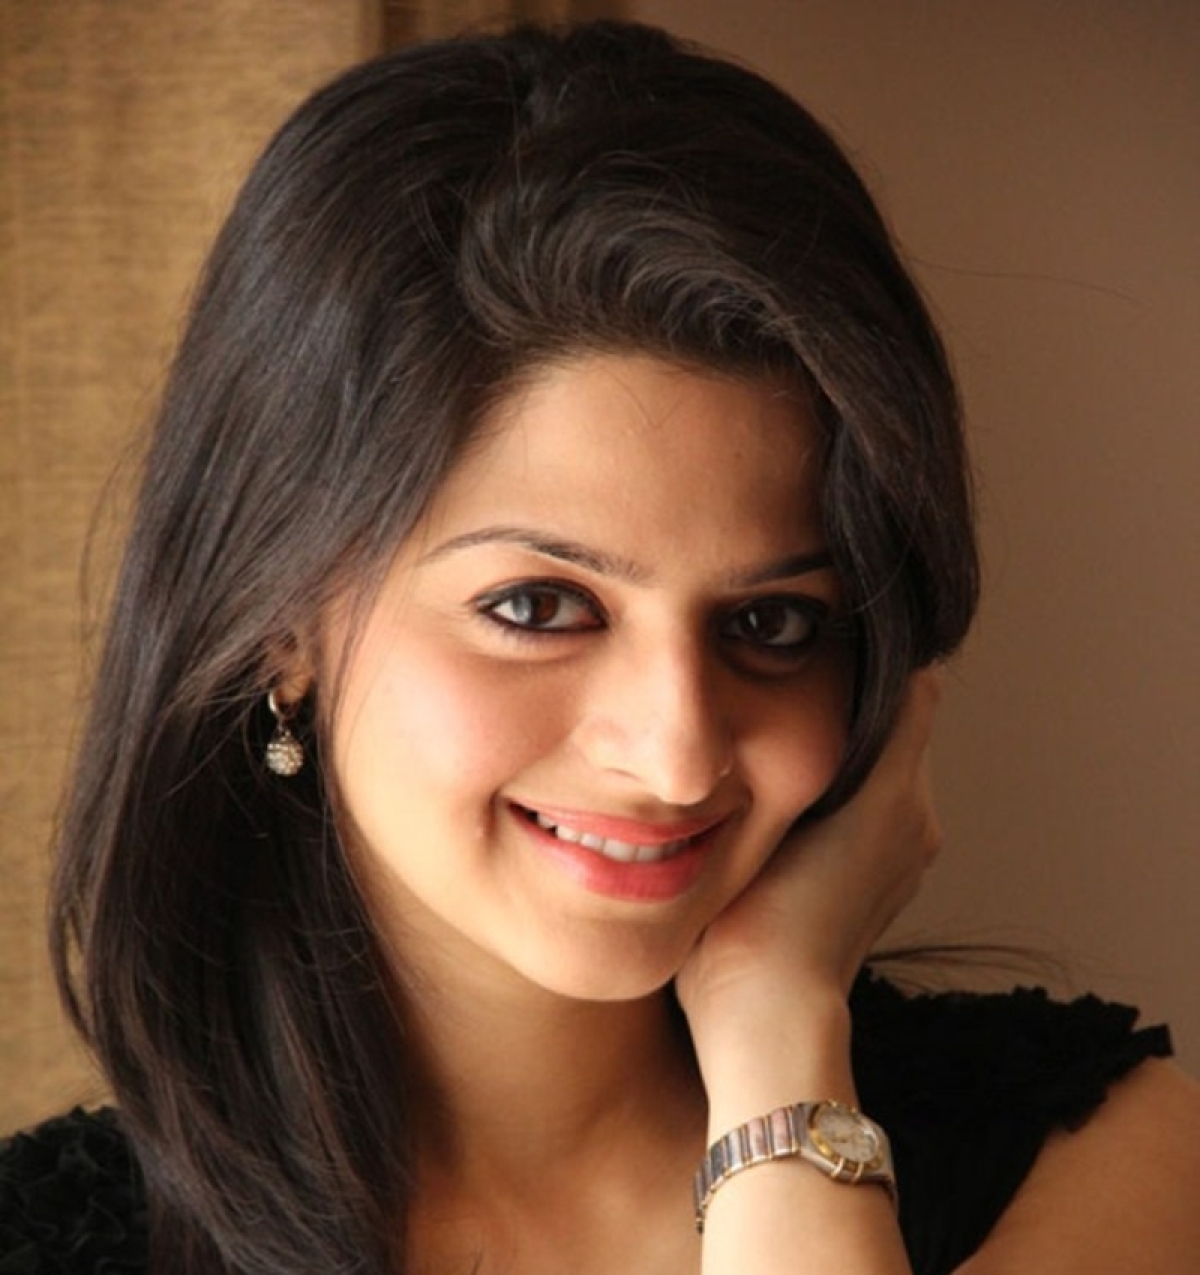 Vedhika Kumar to debut with Emraan Hashmi's film 'The Body'